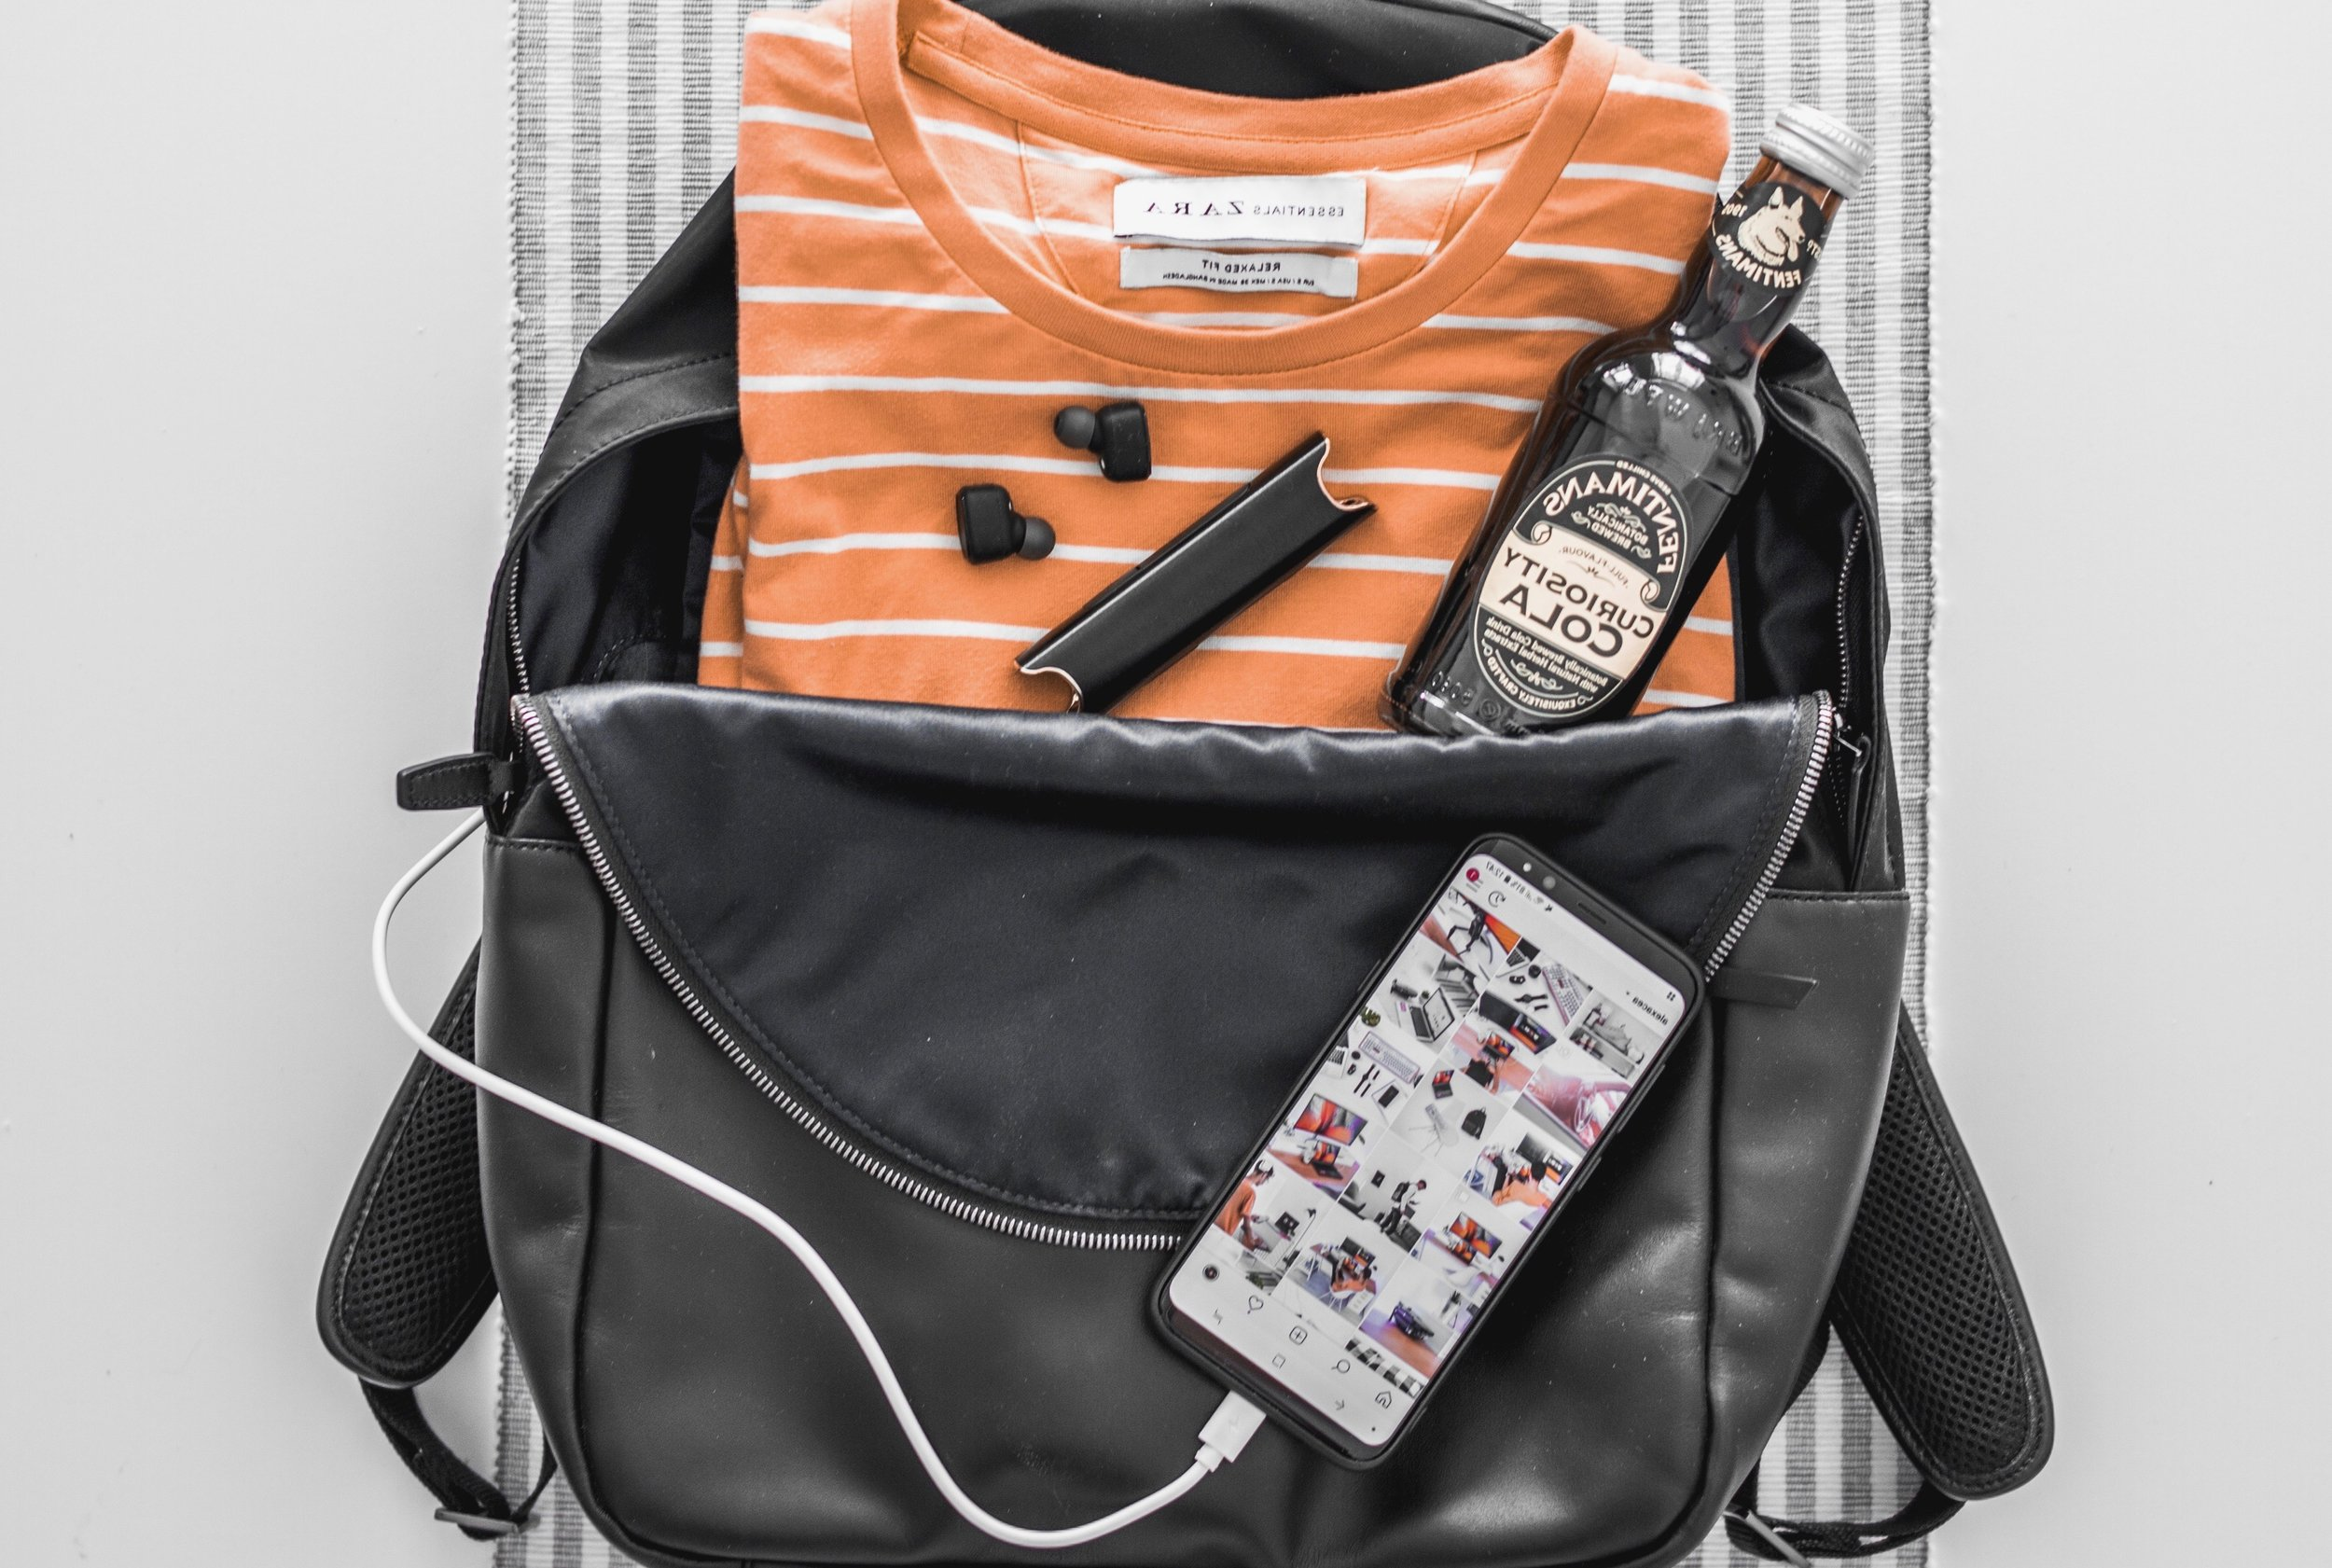 Travel Accessories - Favorite websites to shop everything you need to take with you.